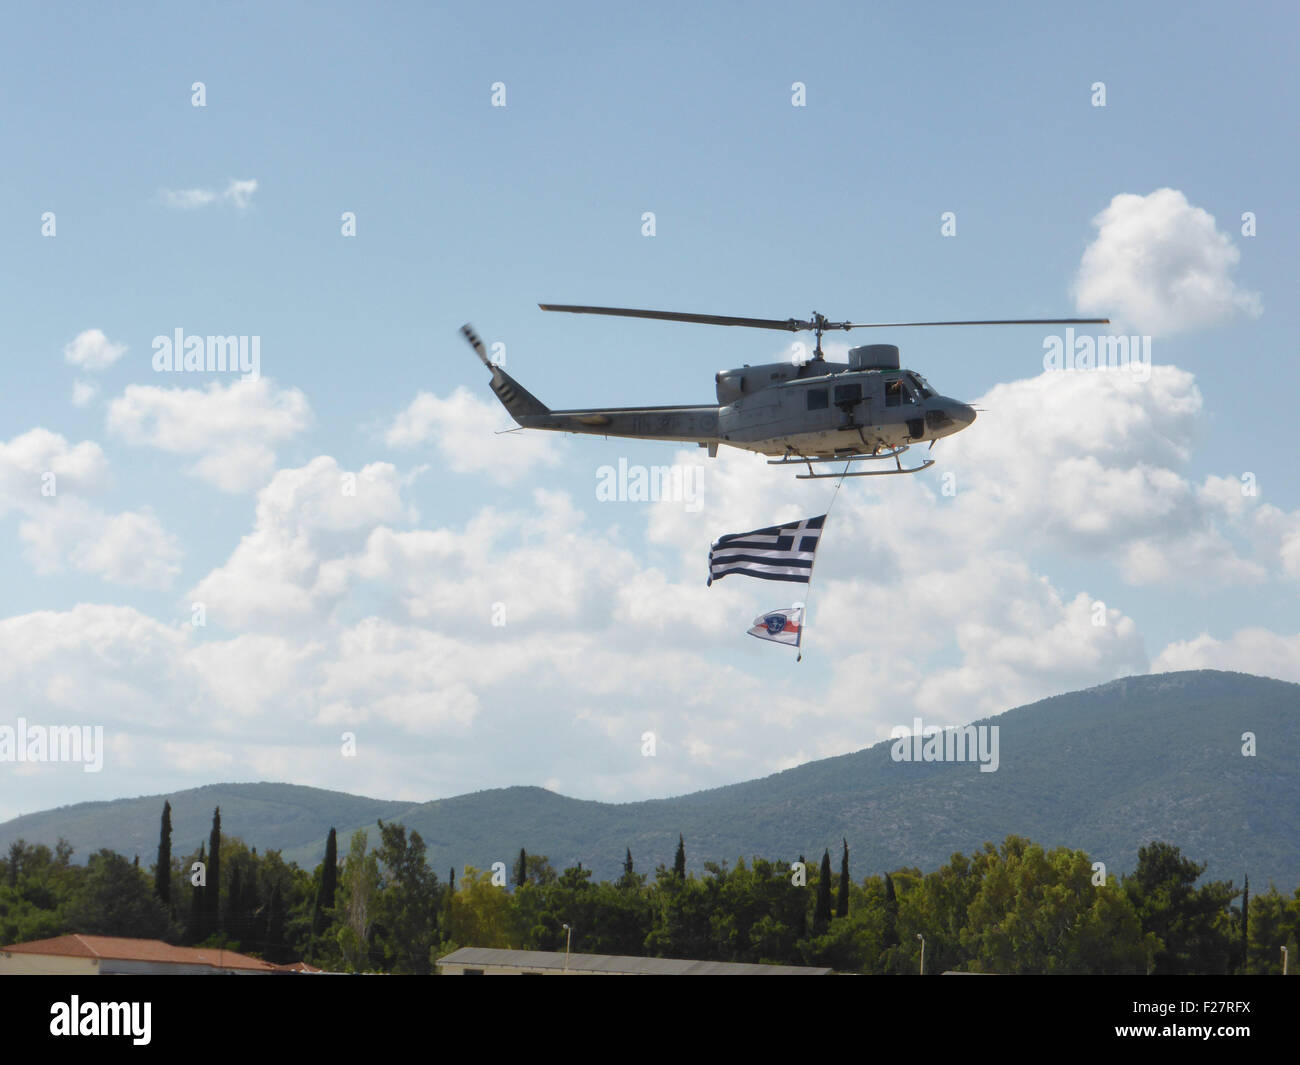 Athens, Greece. 13th Sep, 2015. A Hellenic Navy Helicopter Command AB212 ASW hellcopter flies over the spectators Stock Photo